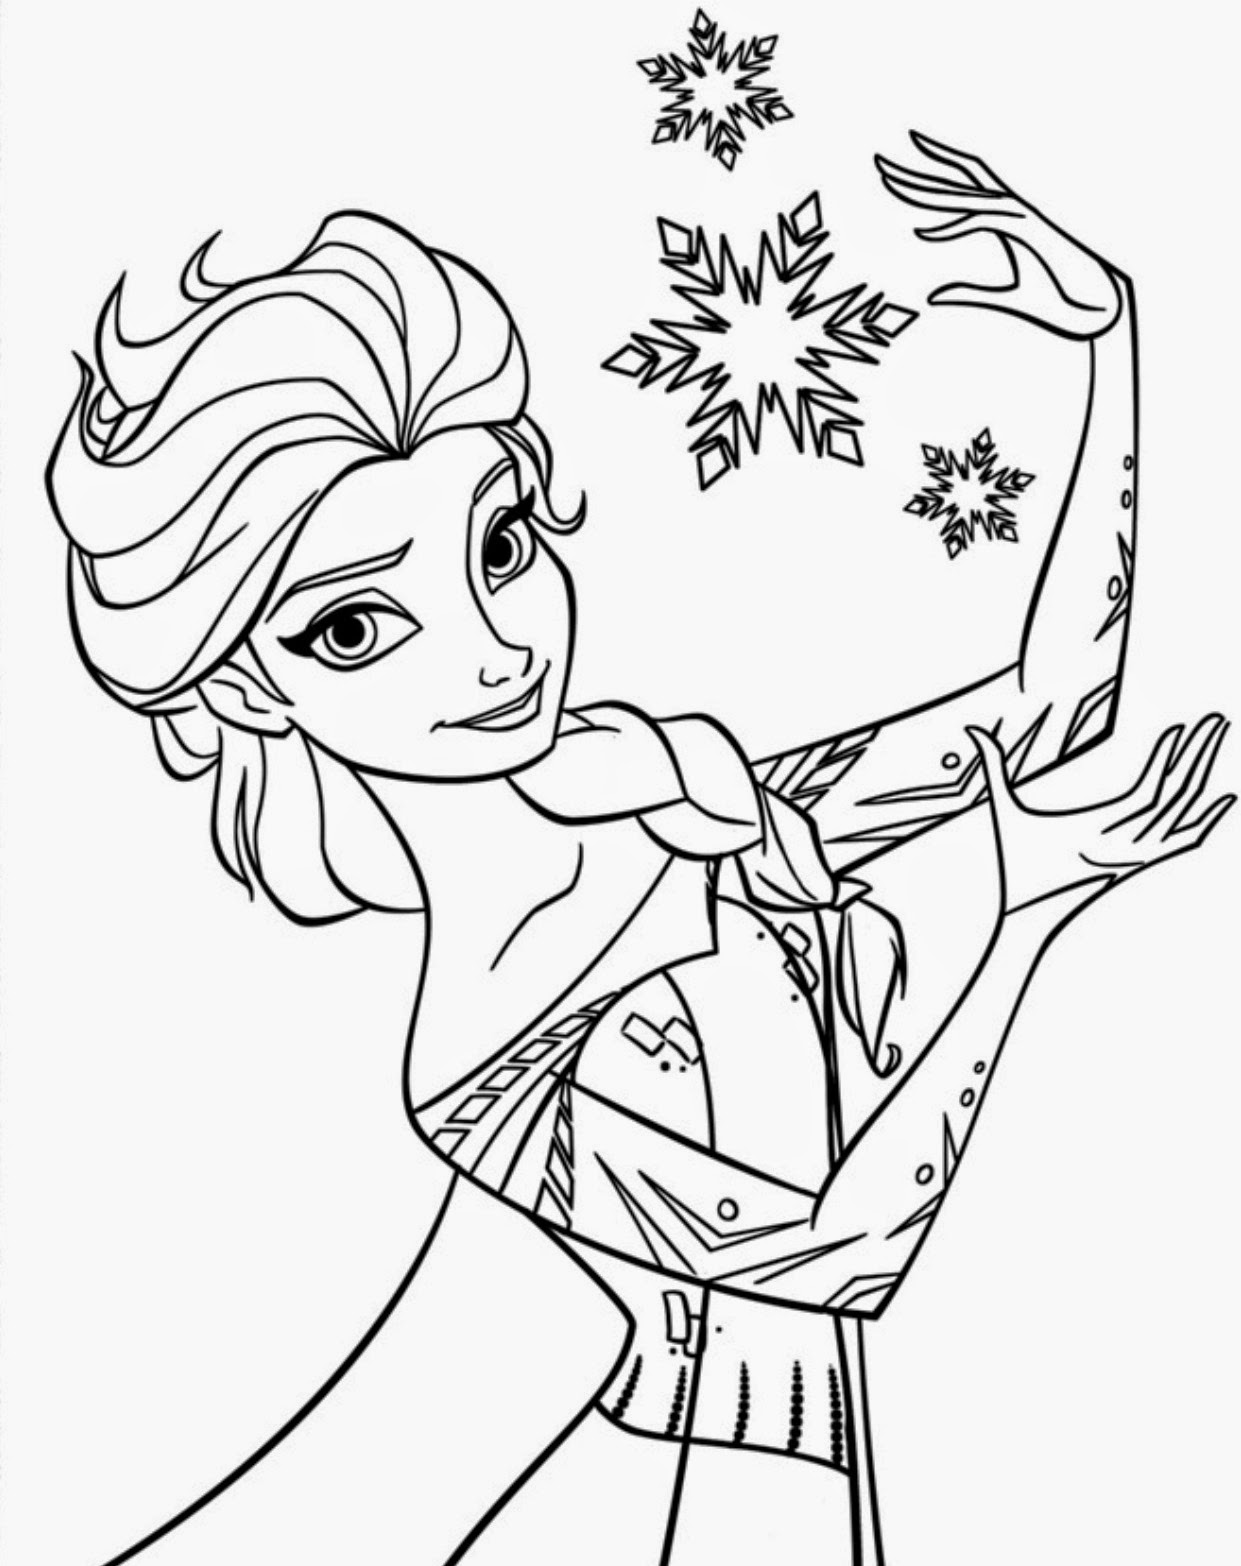 Coloring Pages Frozen Disney : Beautiful disney frozen coloring pages free instant